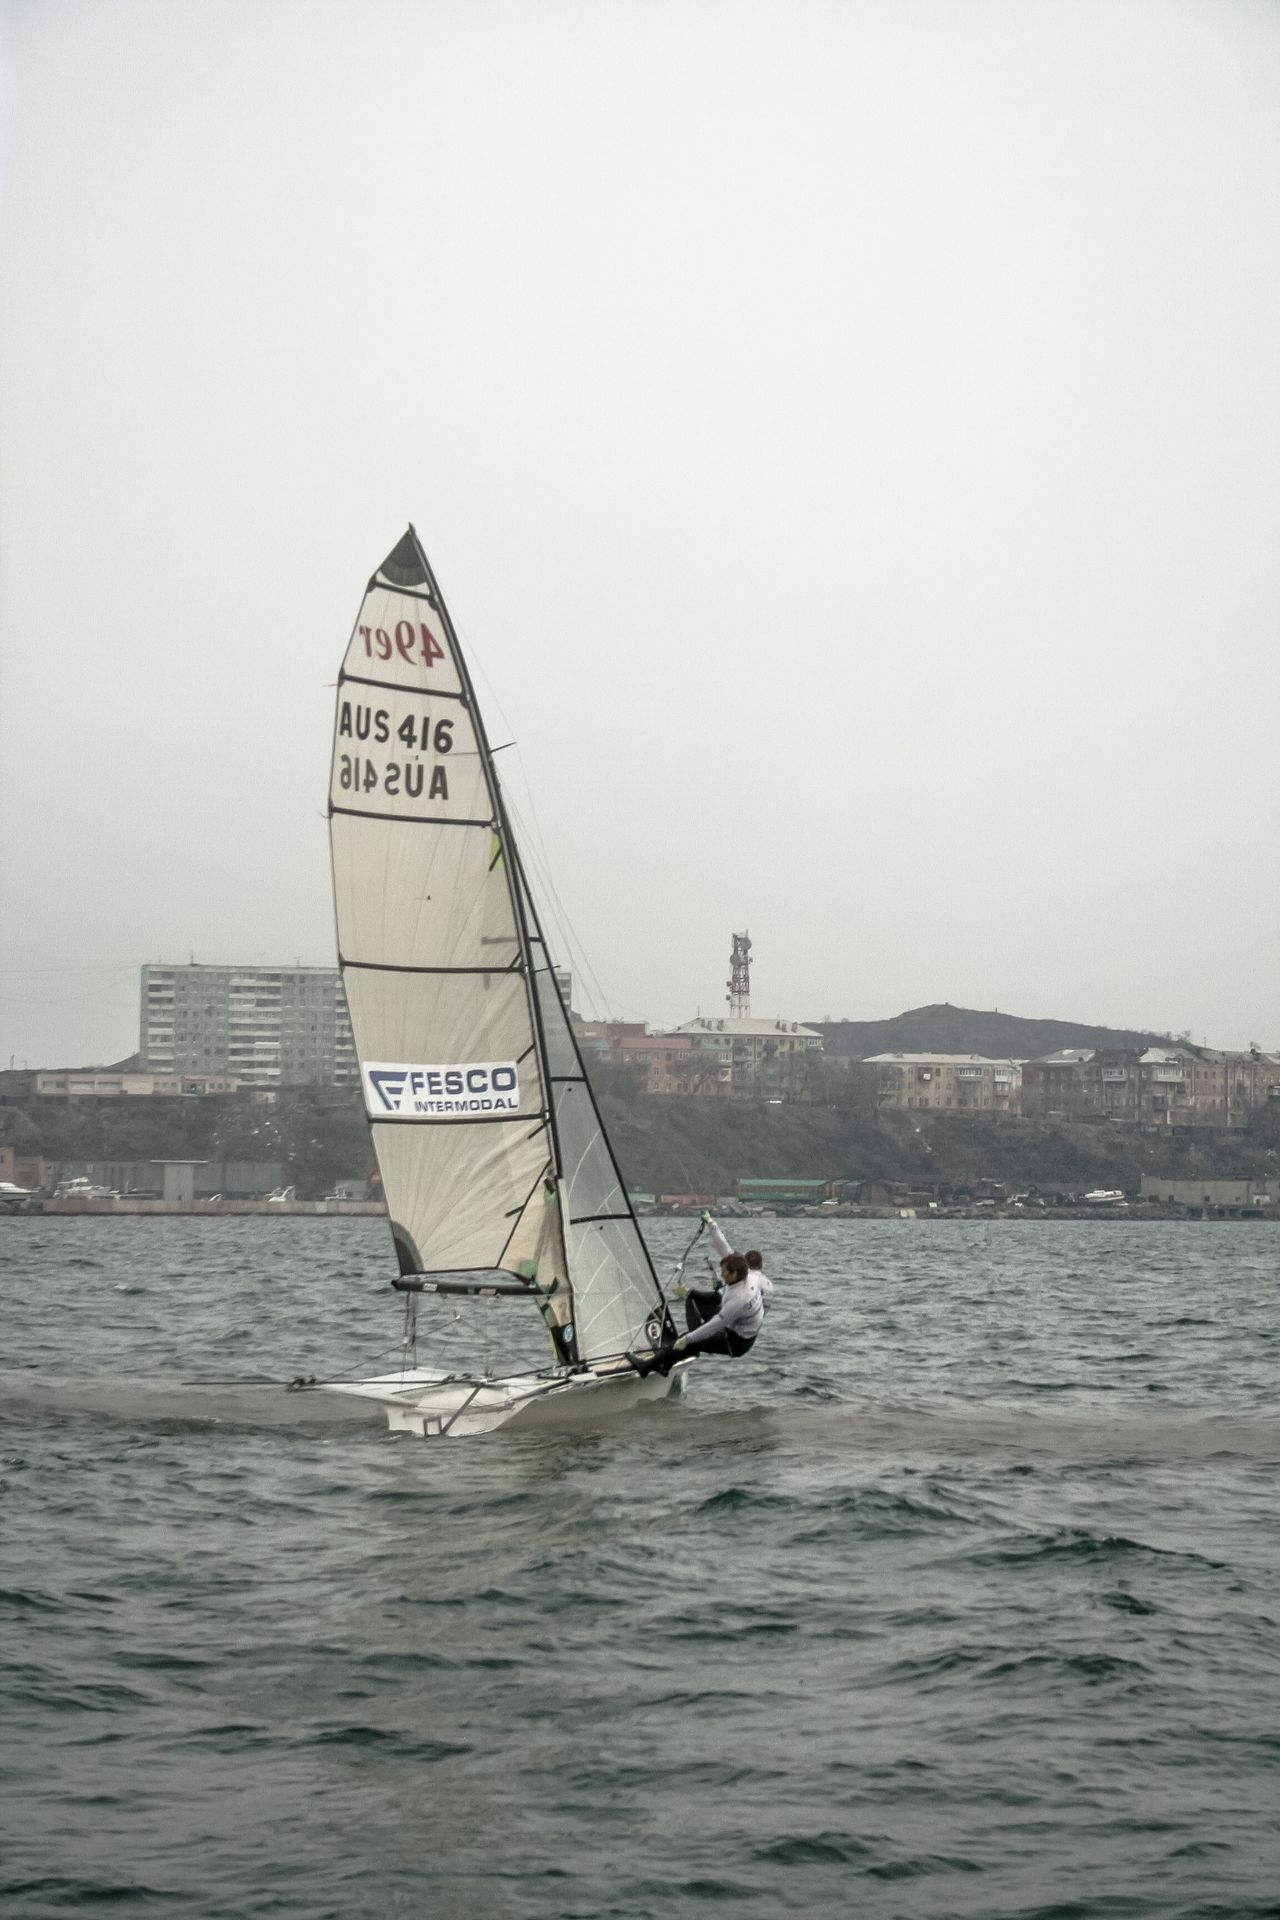 Sport sailing in Vladivostok Adventure Club Building Sailboat Sailing Sail Seascape Sea Seaside Seacoast Sport Waves Sailer Speed Man Bay Wind